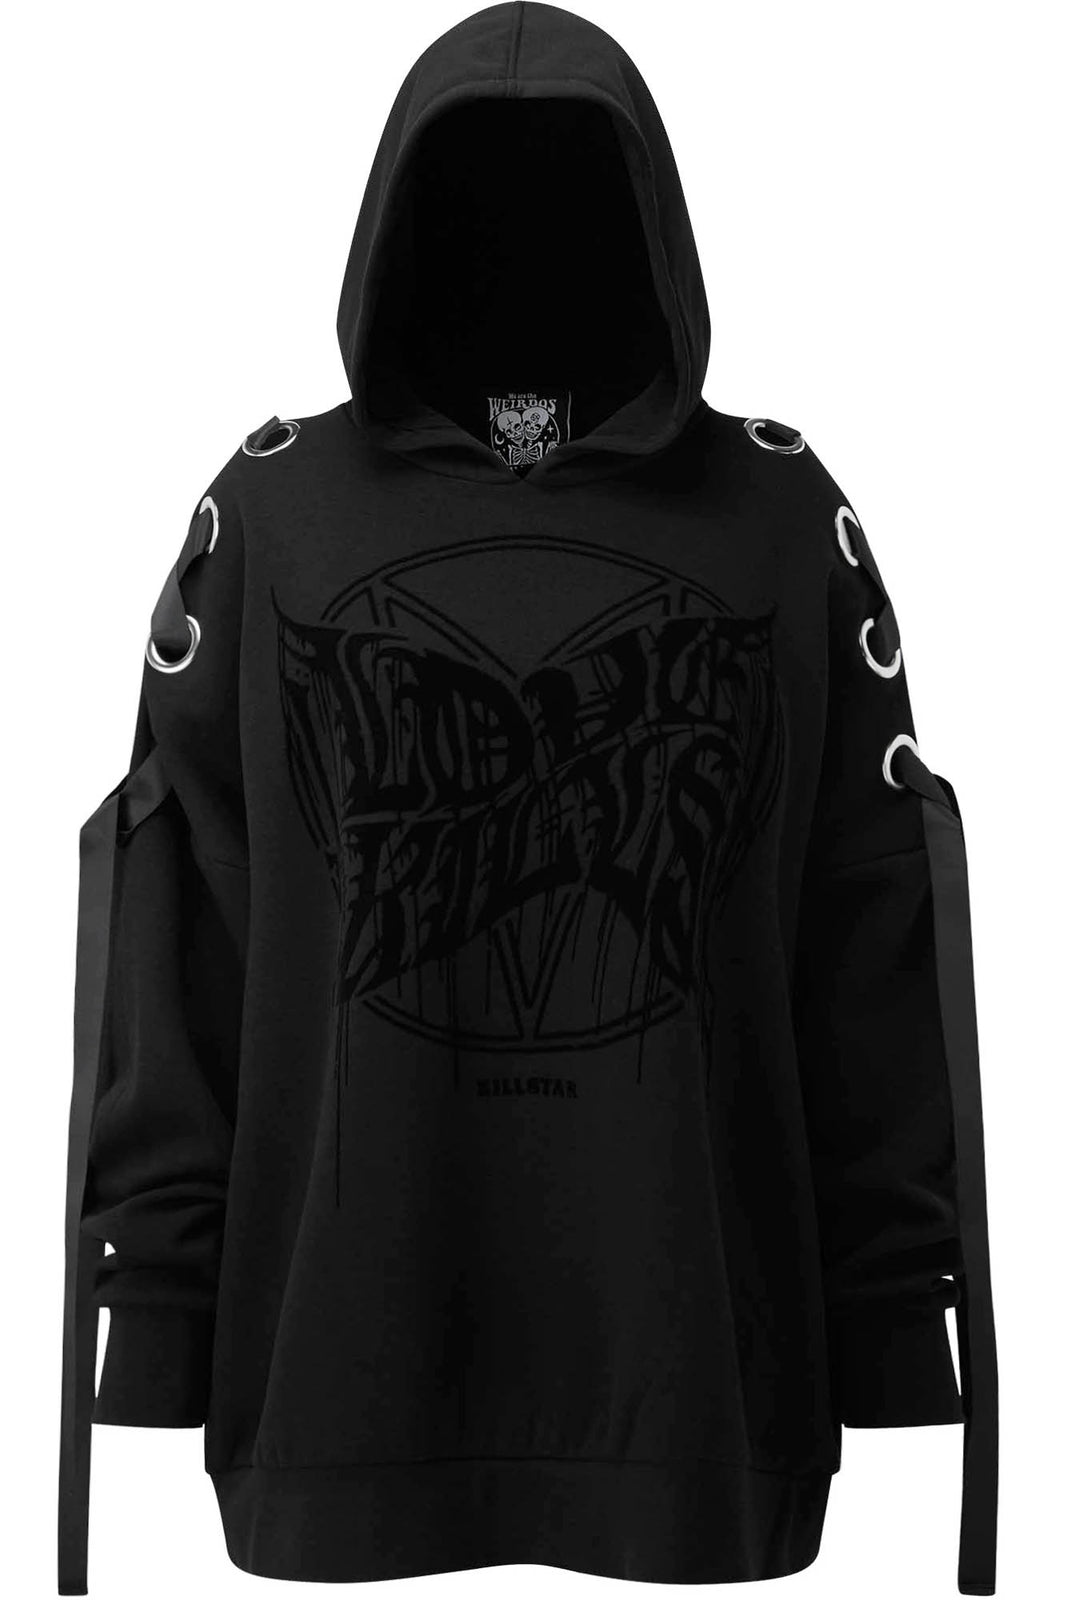 Other Worlds Oversized Hoodie [PLUS]